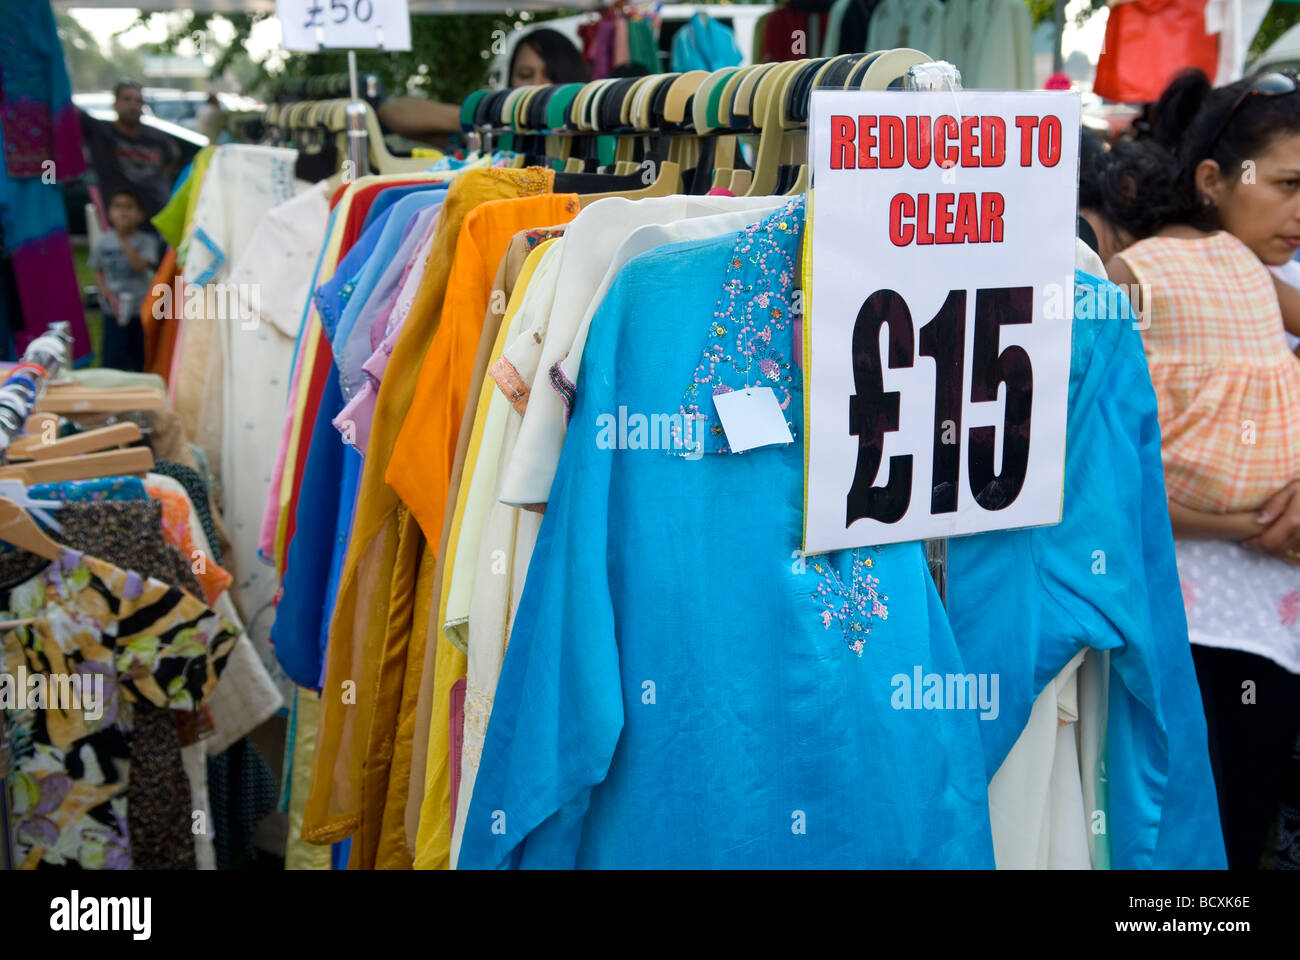 Image result for clothes on sale